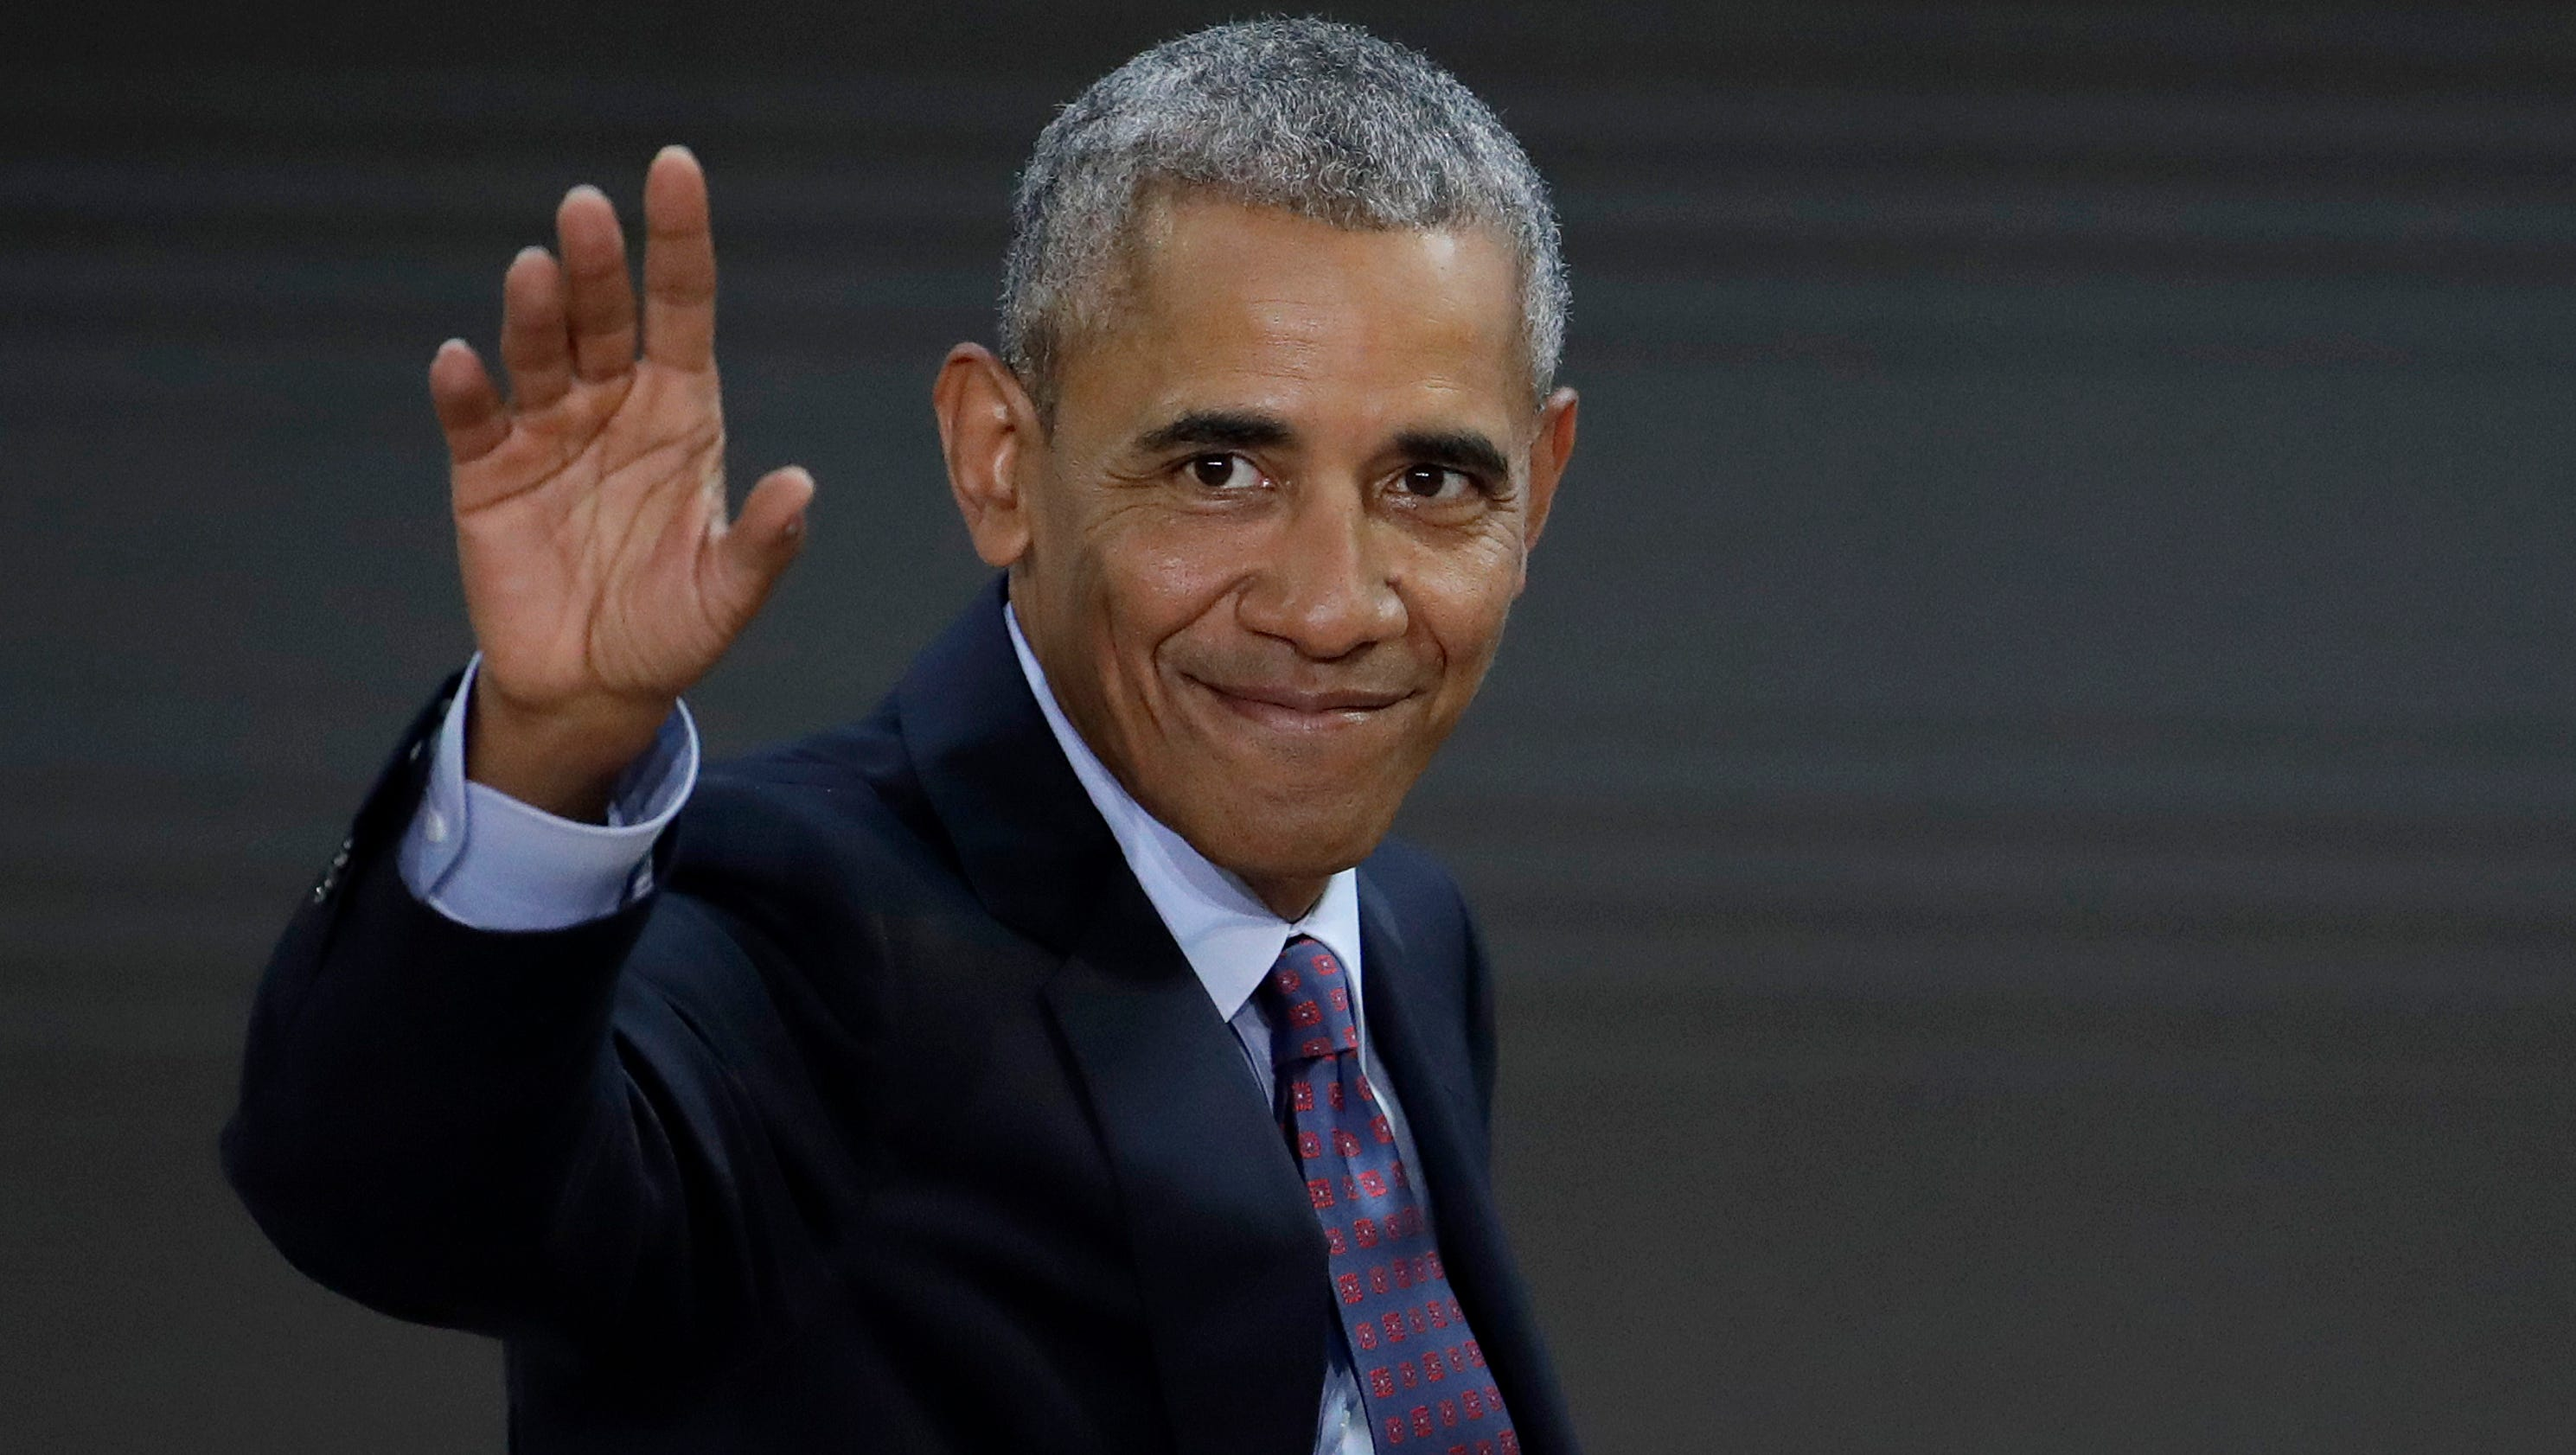 Scientists discover fossil of ancient sea creature, name it after President Obama